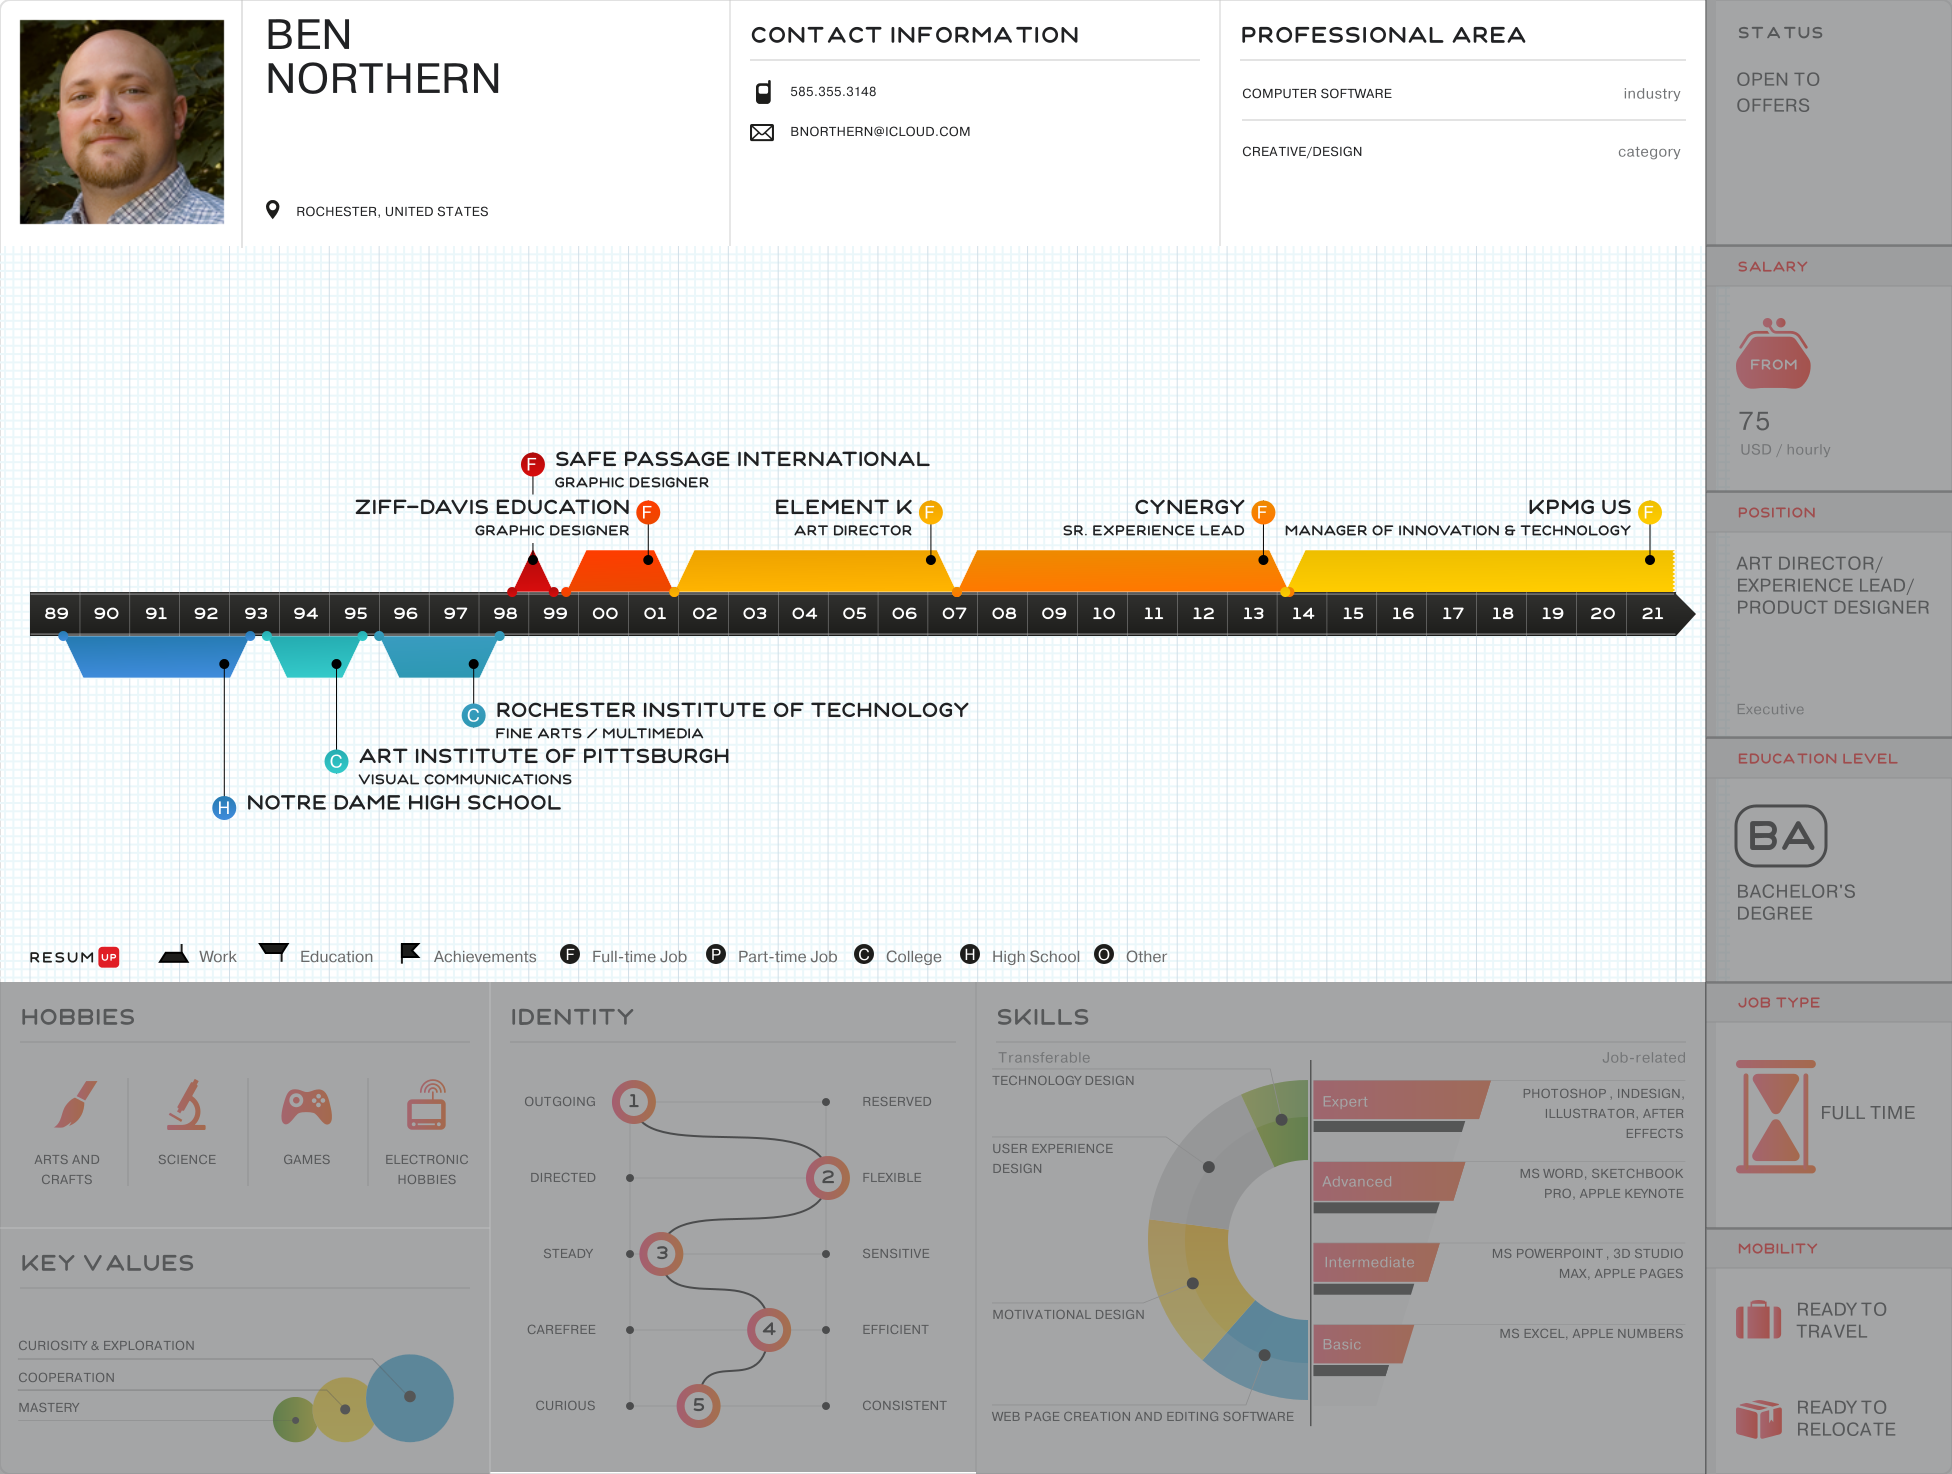 Ben Northern - Visual Infographic resume